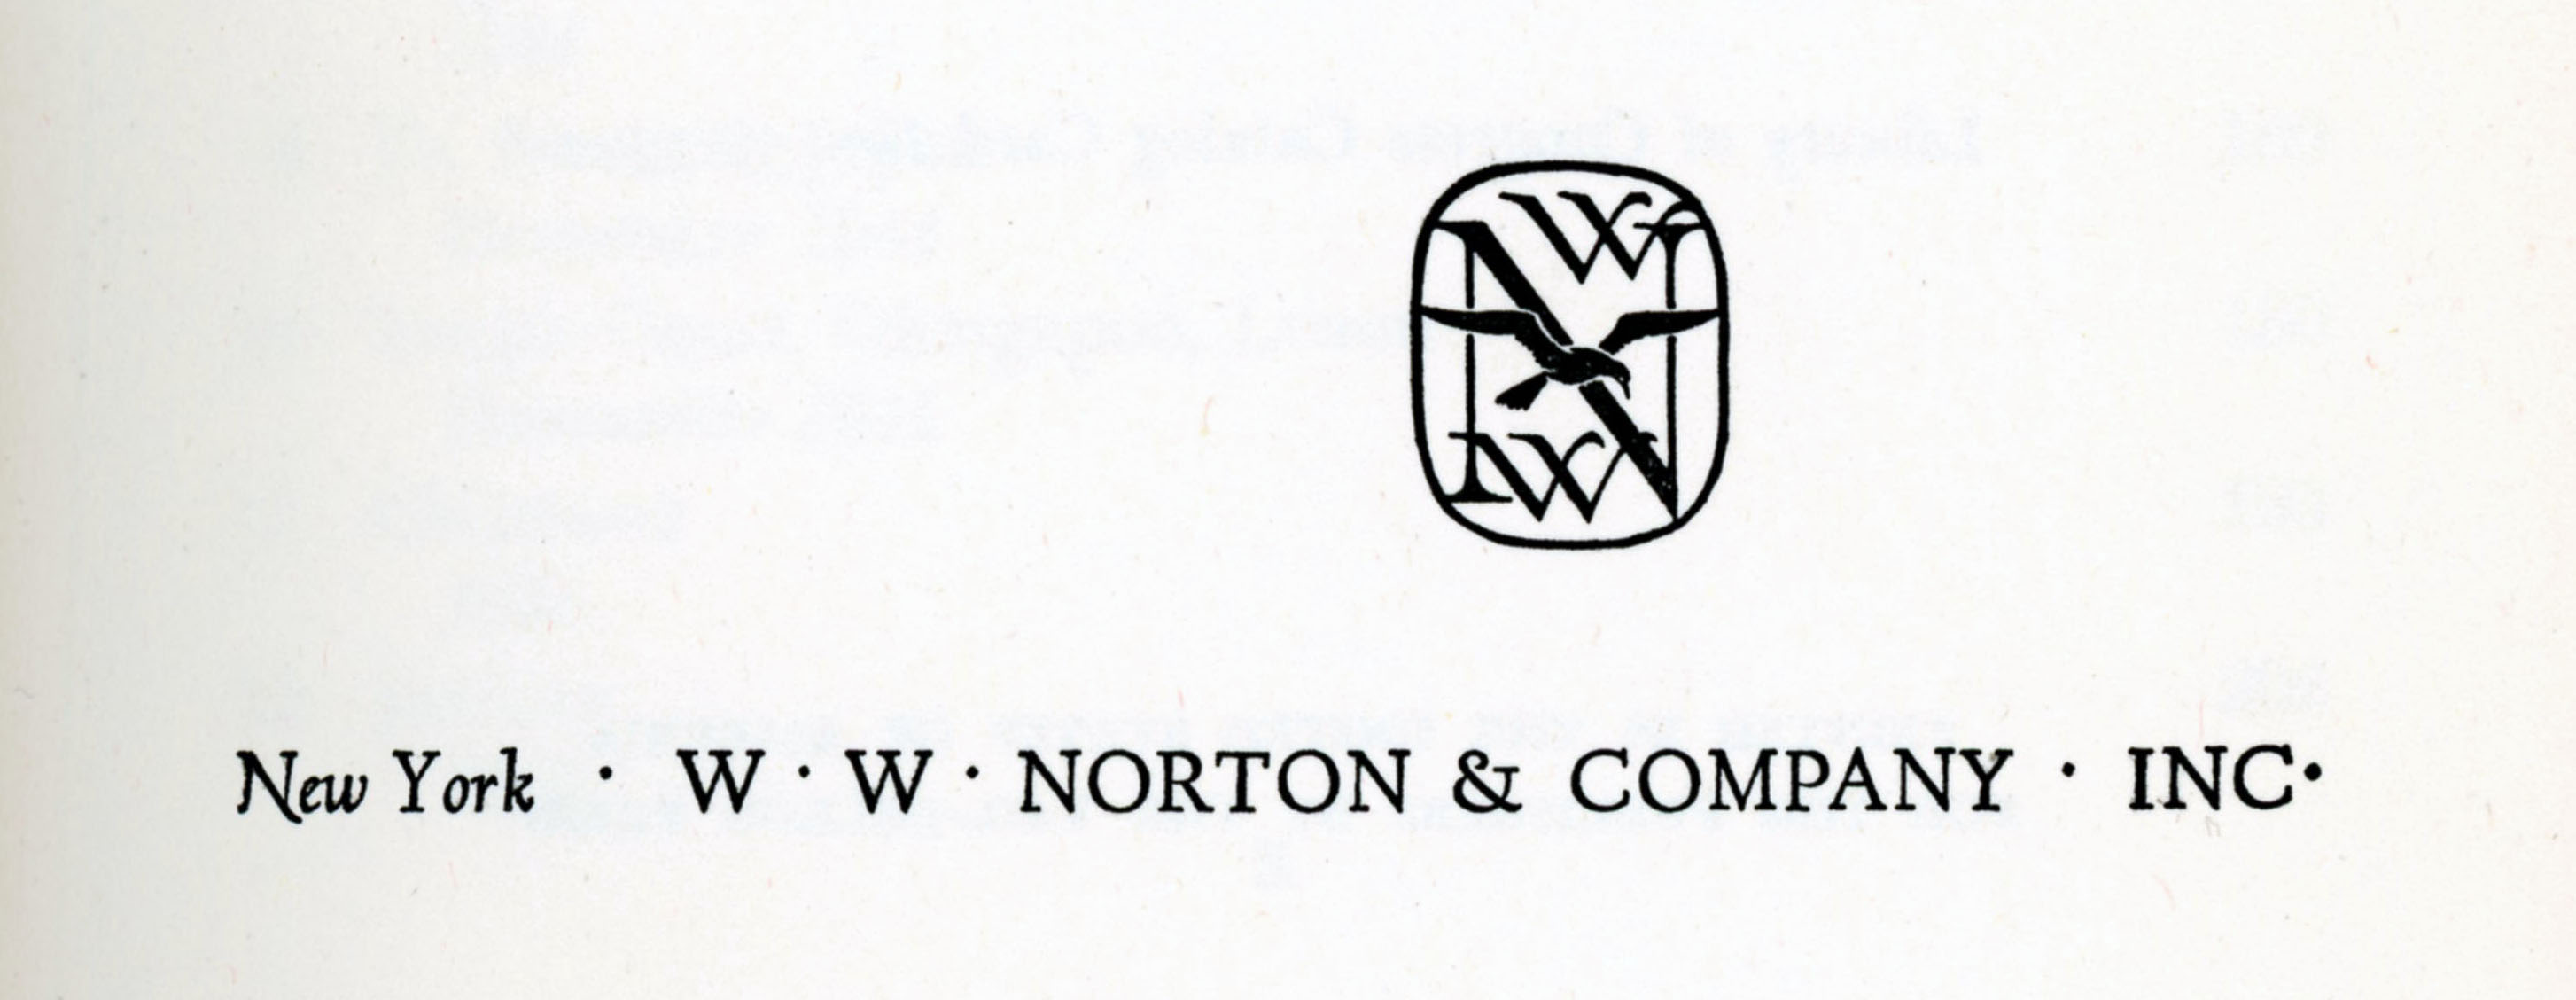 W.W. Norton & Company Inc. (Give Us This Day, by Sidney Stewart – 1956)